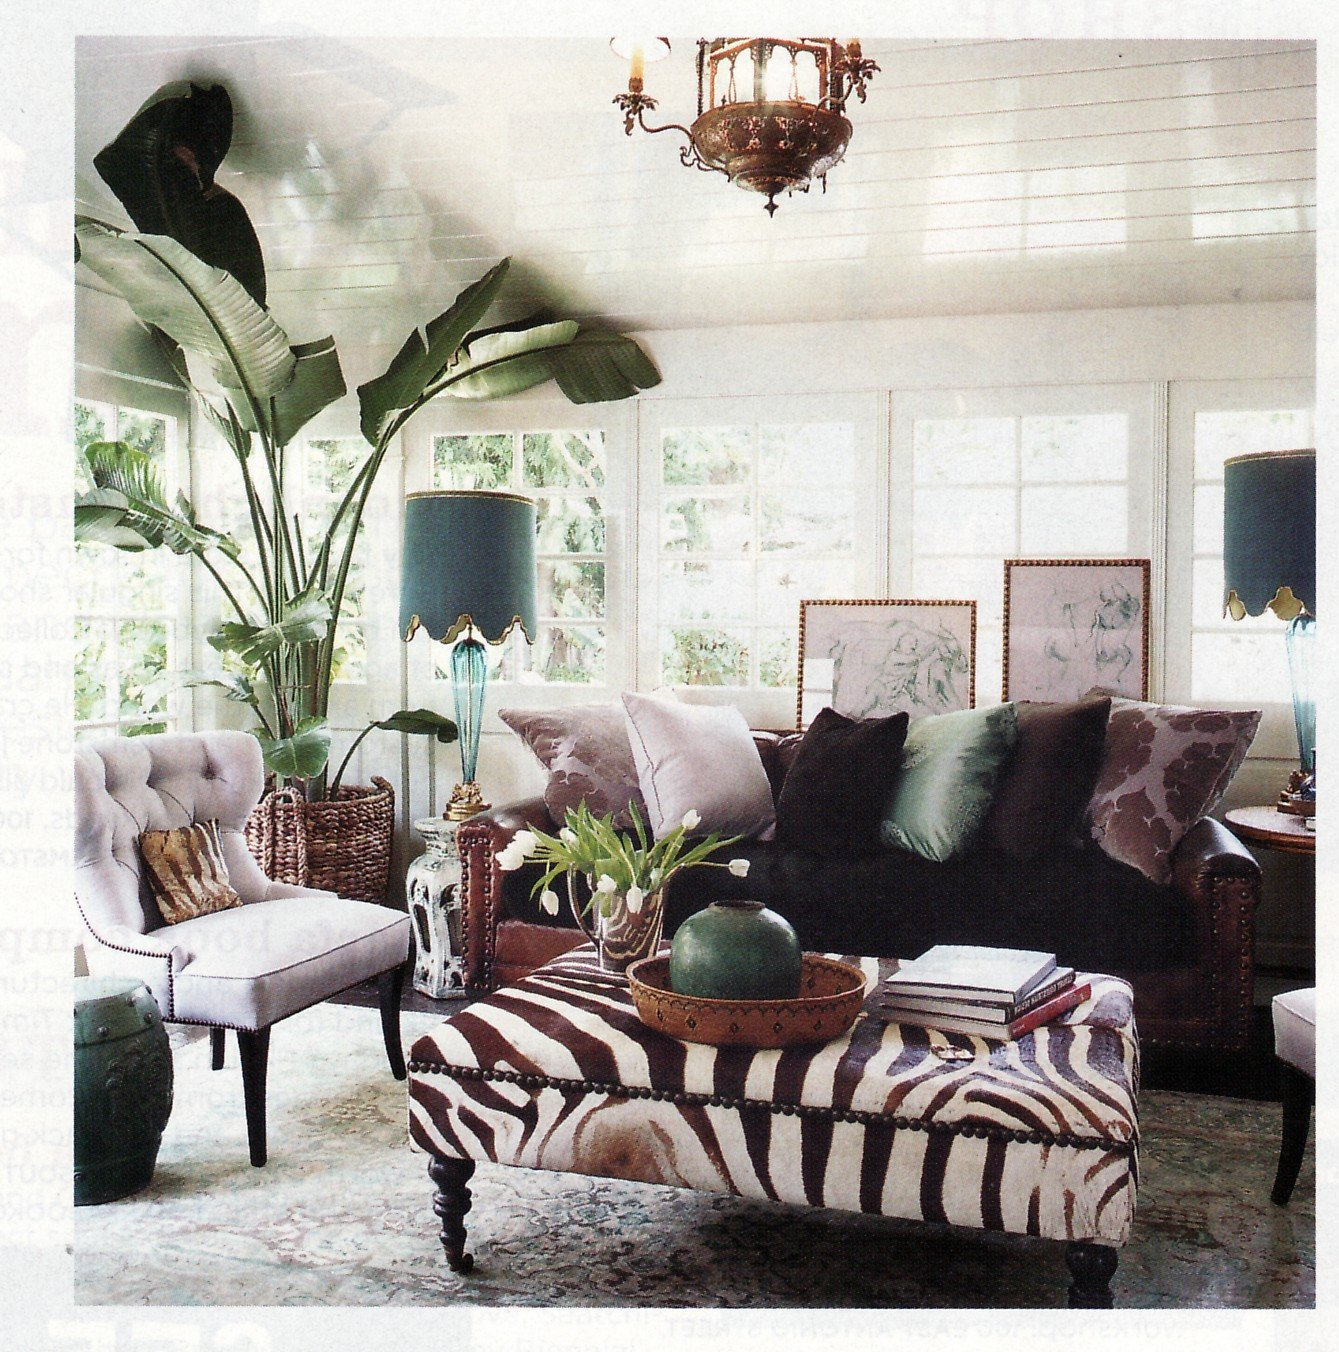 Leopard Decor for Living Room Luxury Rachel Hazelton Interior Design Style File Boho Chic